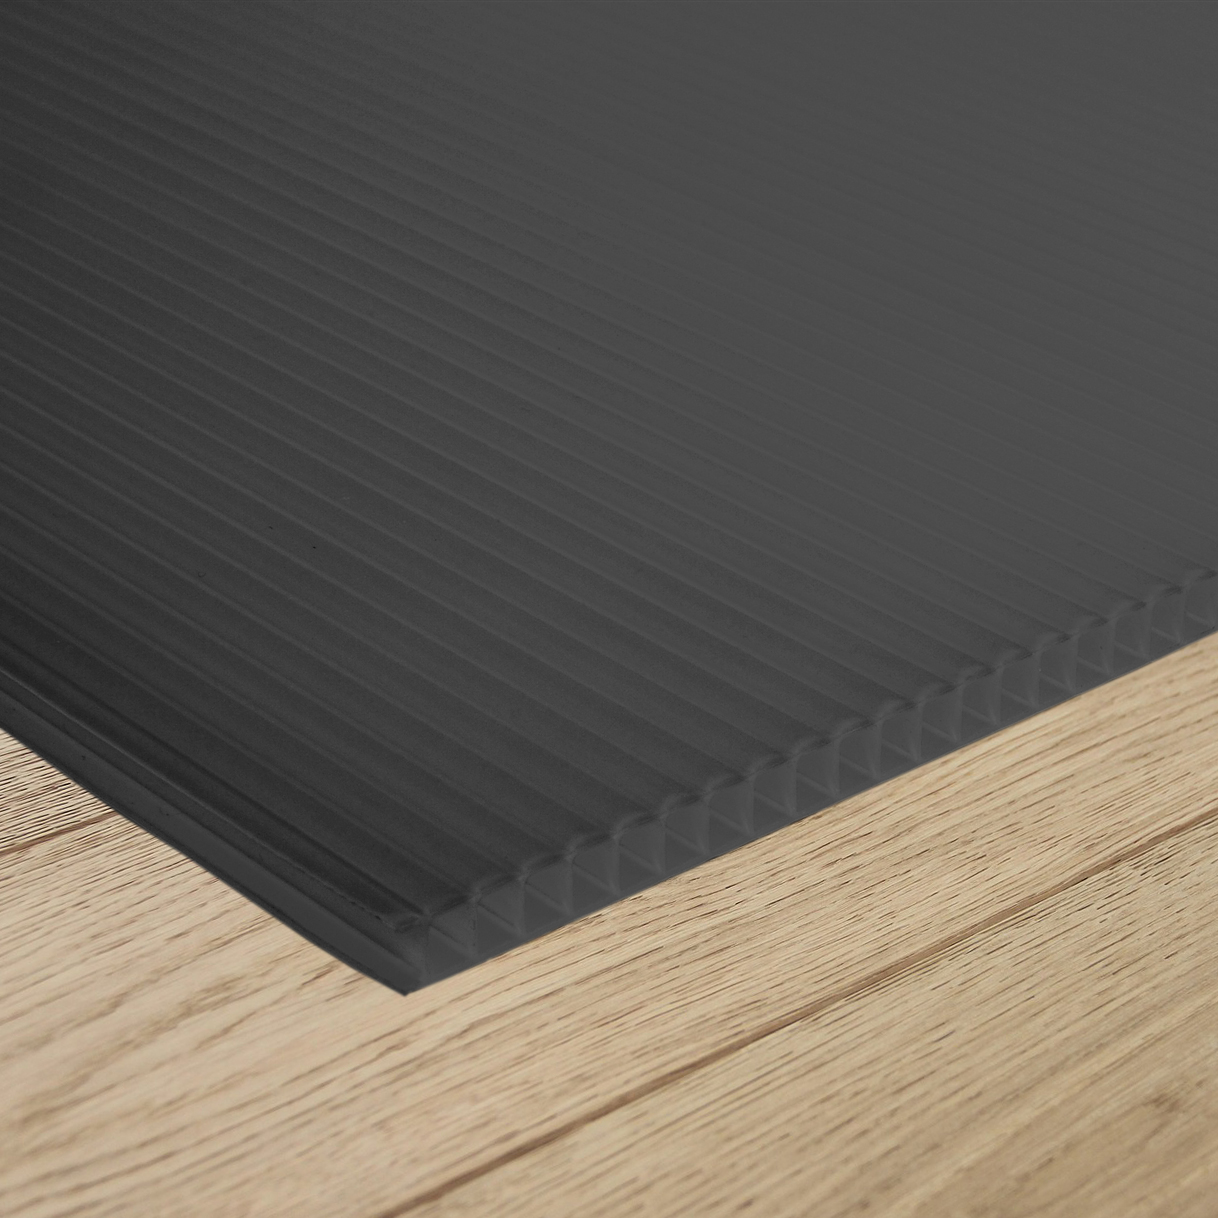 Correx sheet corrugated floor protection cover plastic board